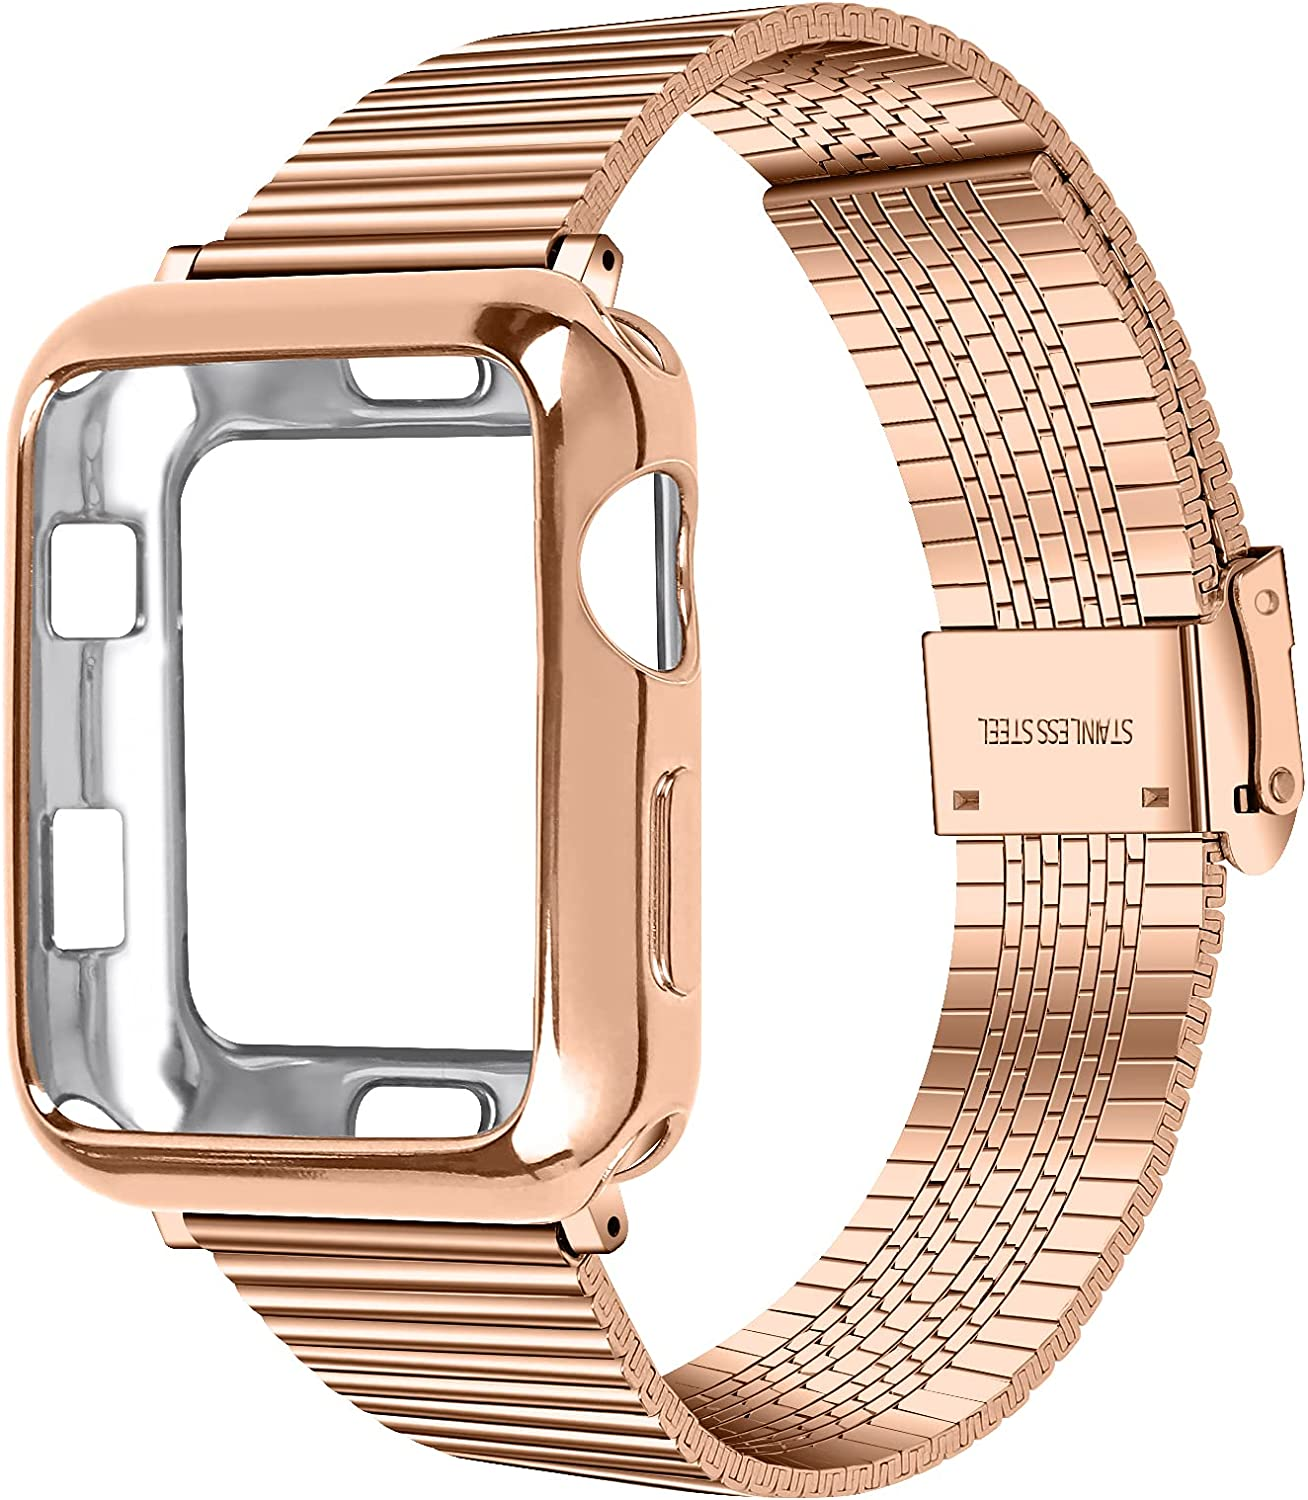 JANSIN Compatible with Apple Watch Band 40mm 44mm 38mm 42mm, upgraded Stainless Steel Band with Protective case for iwatch Series 6/SE/5/4/3/2/1